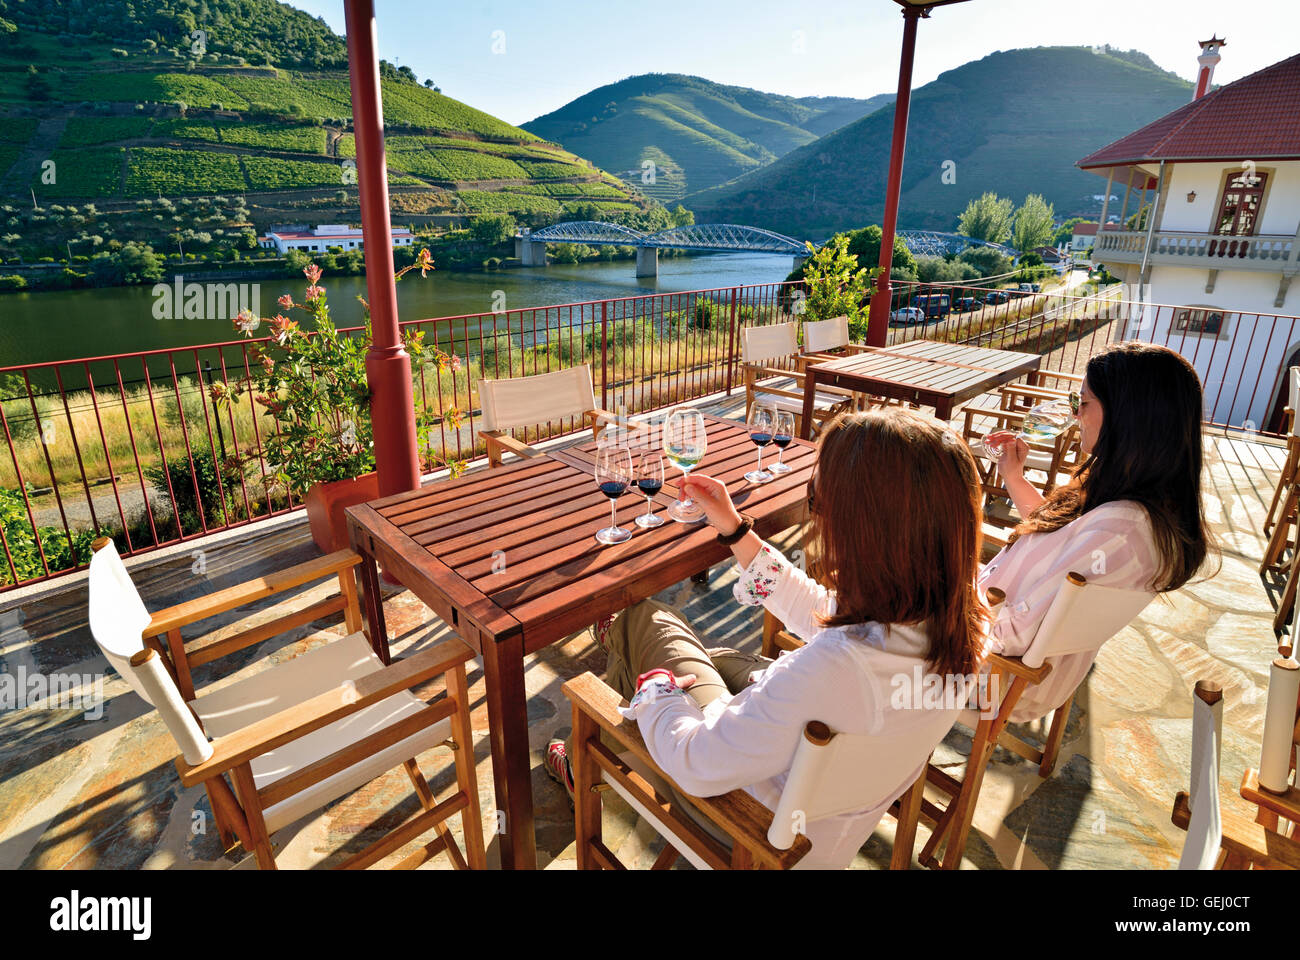 Portugal: Two women tasting wine at the terrace of Quinta do Bomfim with splendid view to the Douro river - Stock Image